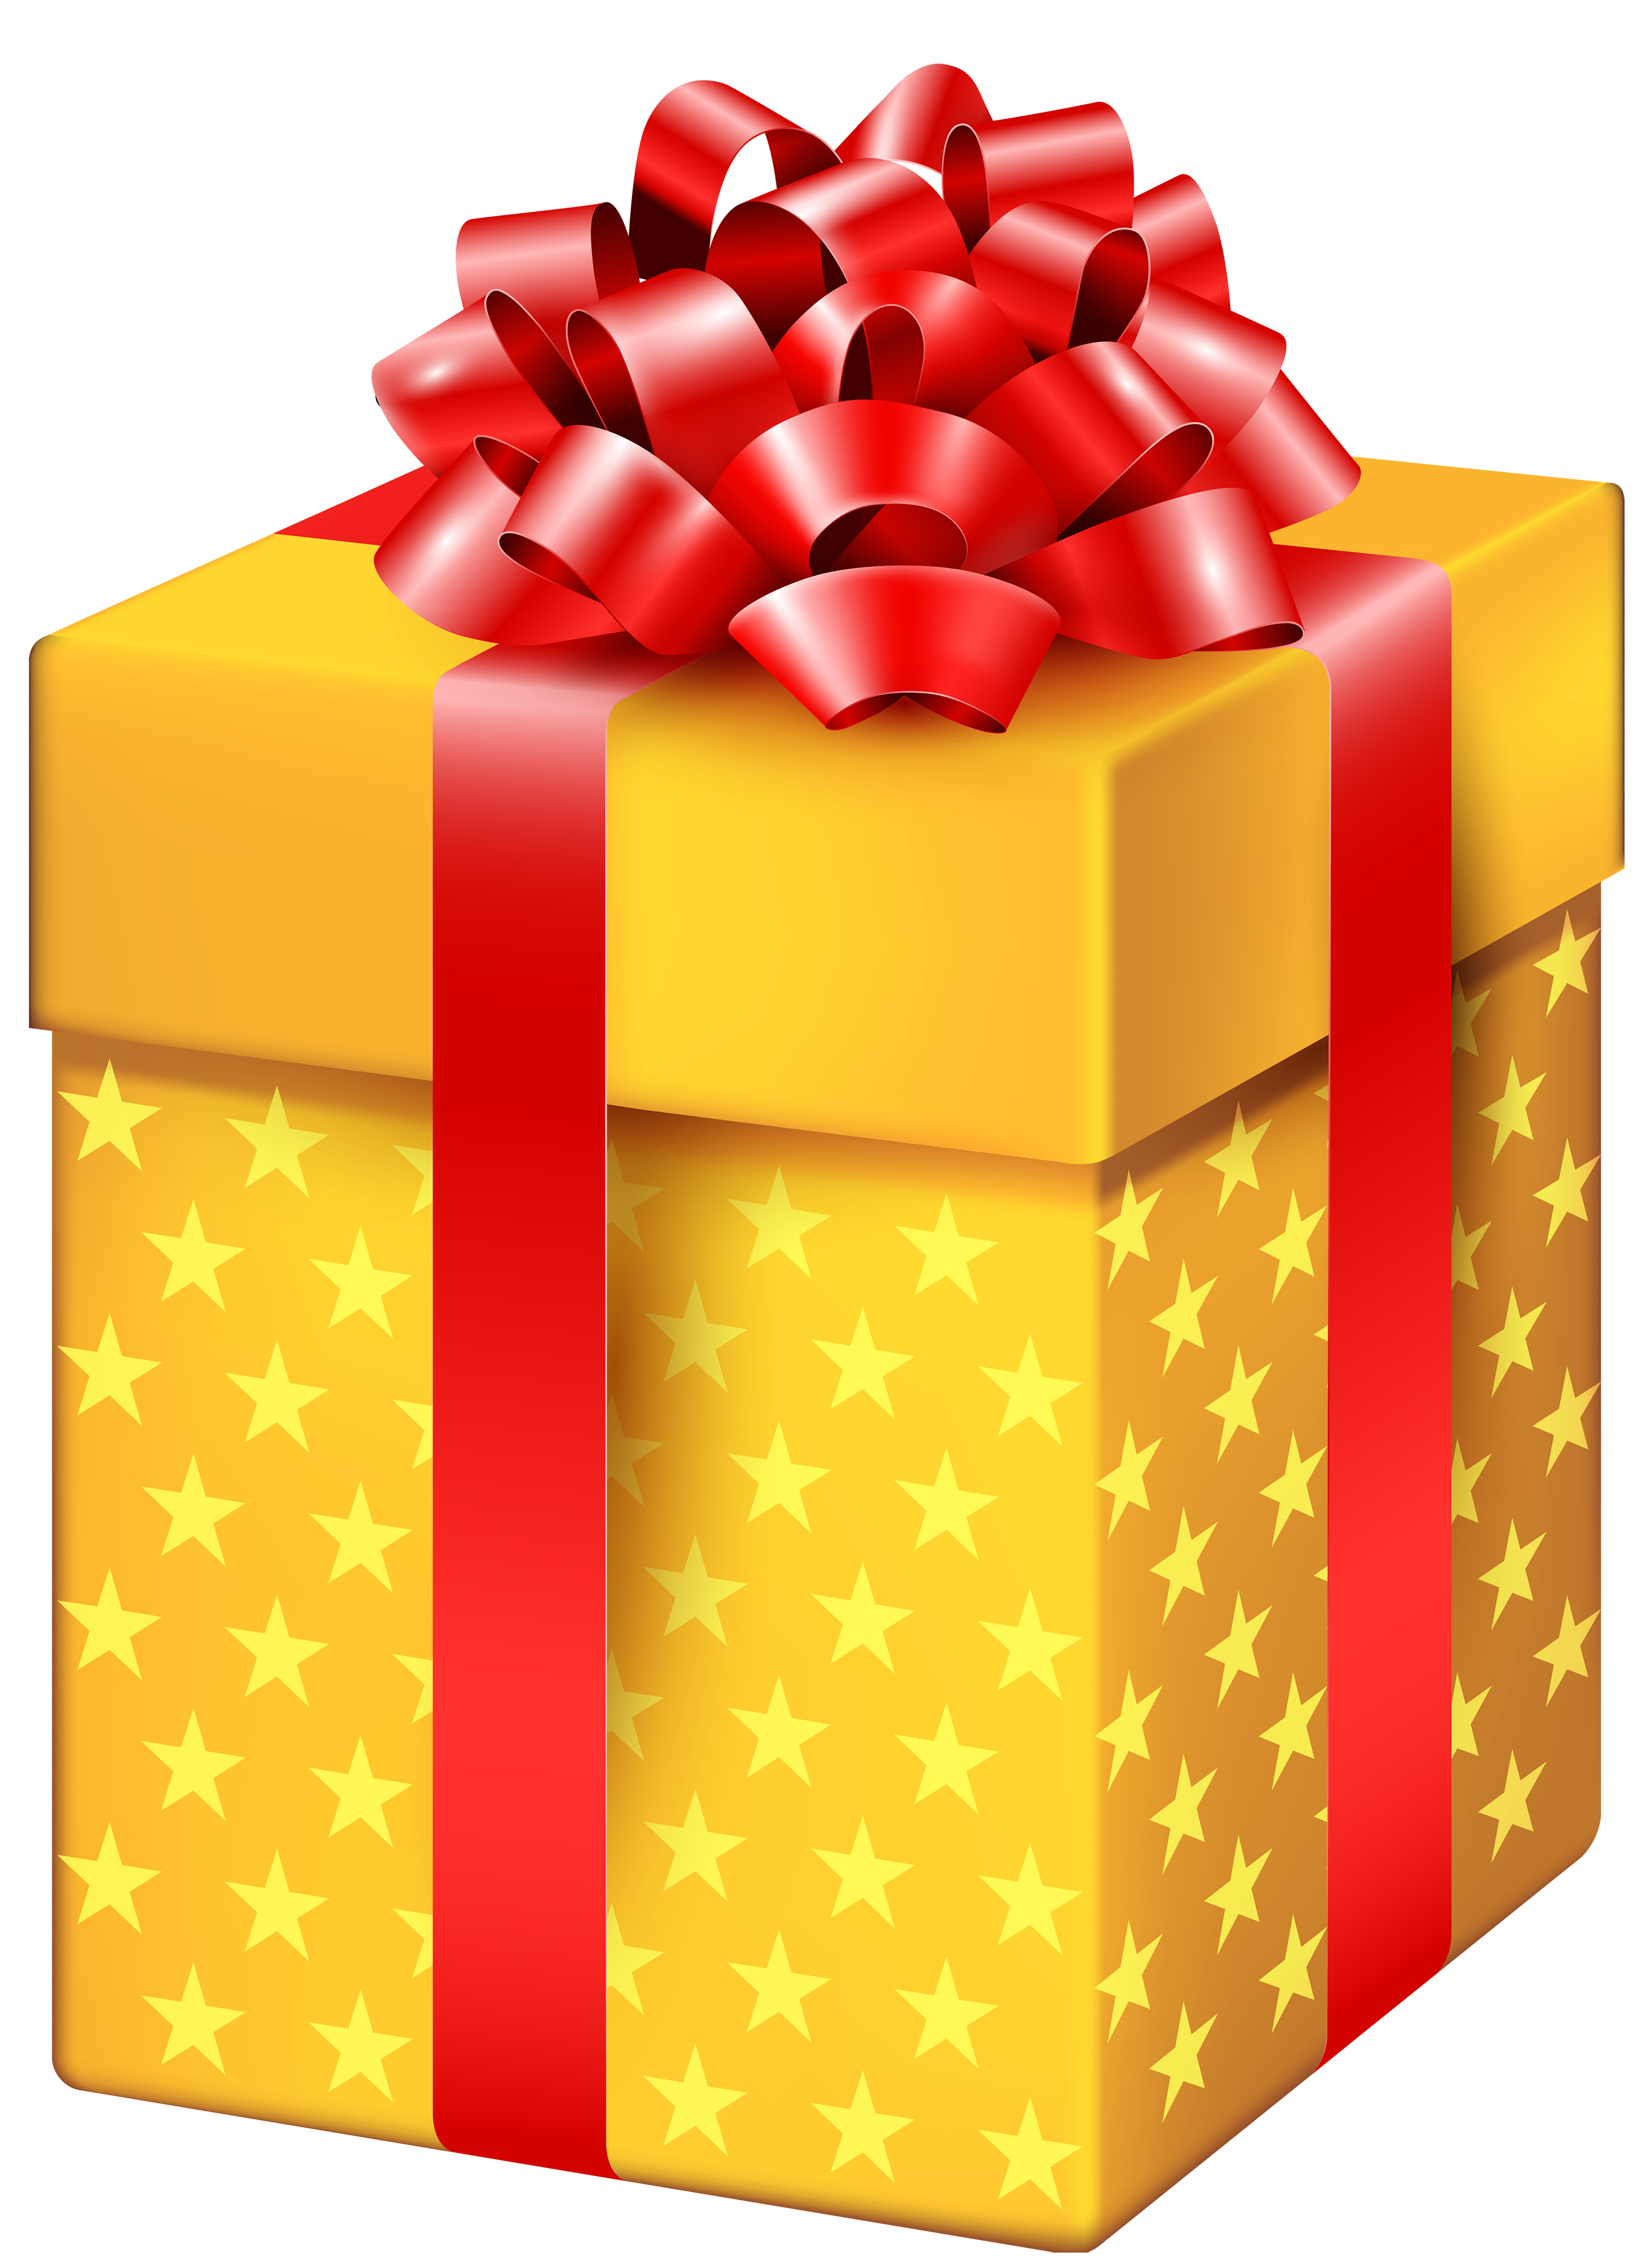 Gift clipart. Yellow box with stars